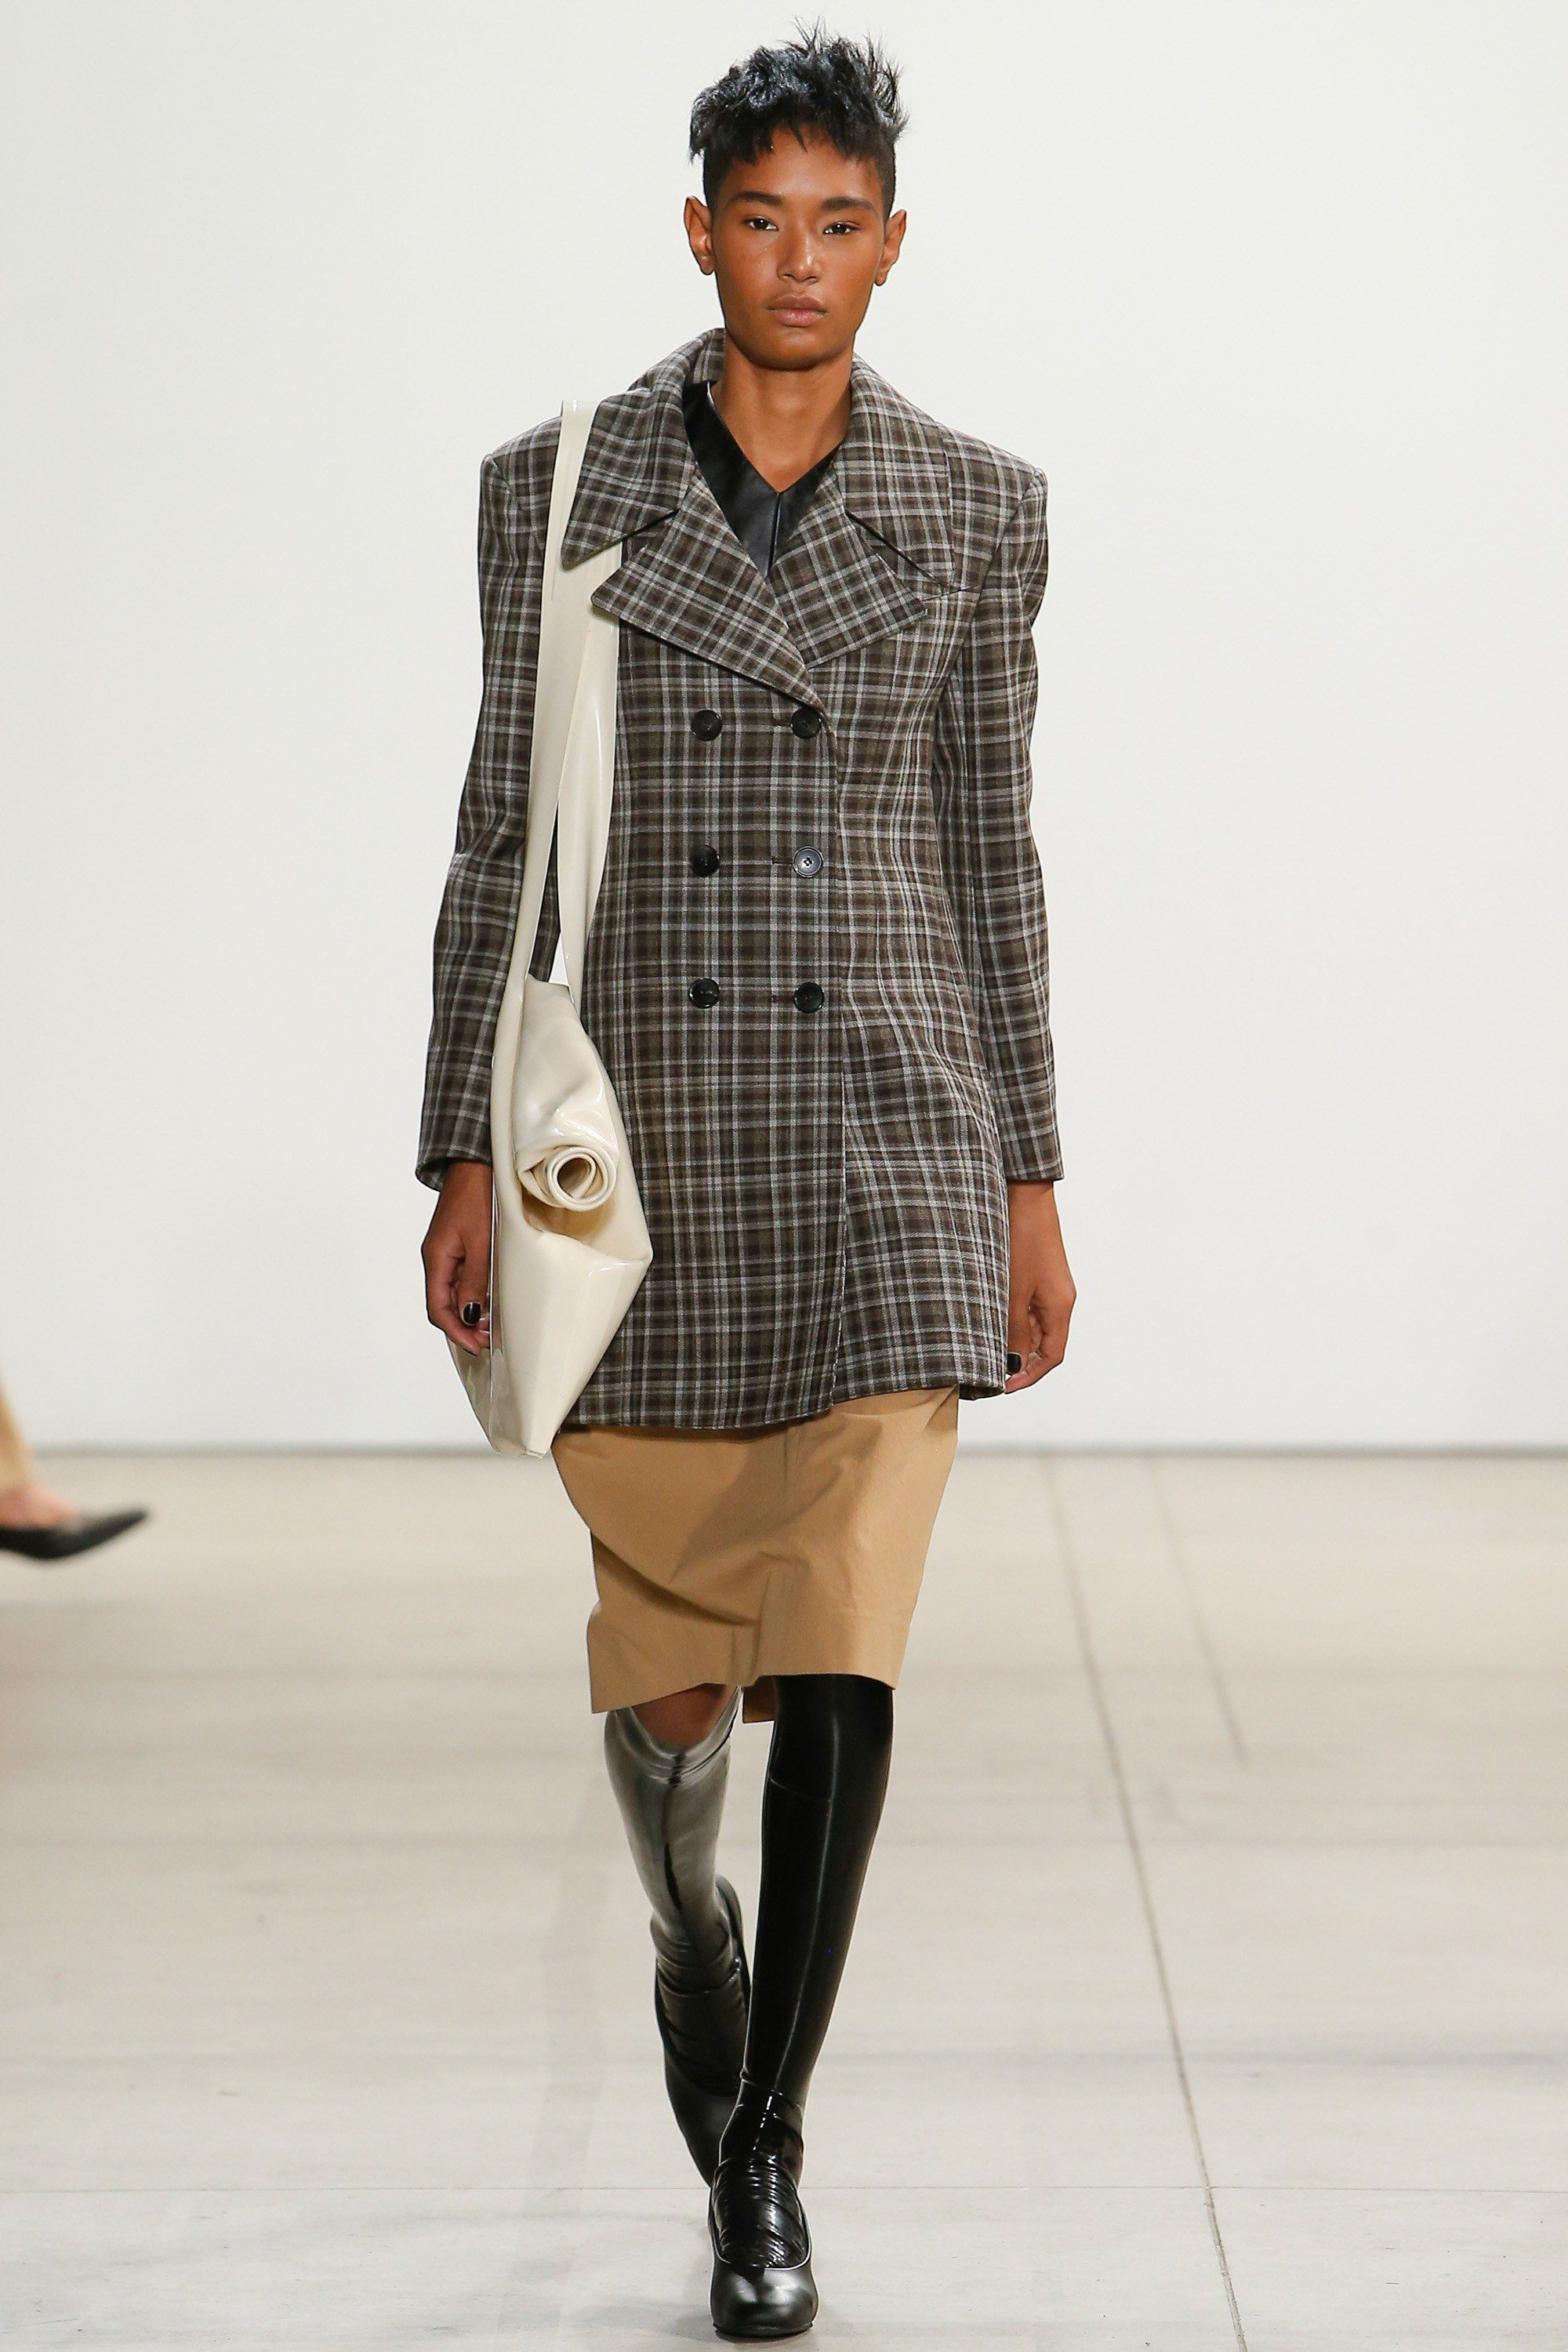 Creatures of the Wind Fall 2017 Ready-to-Wear Collection Photos - Vogue